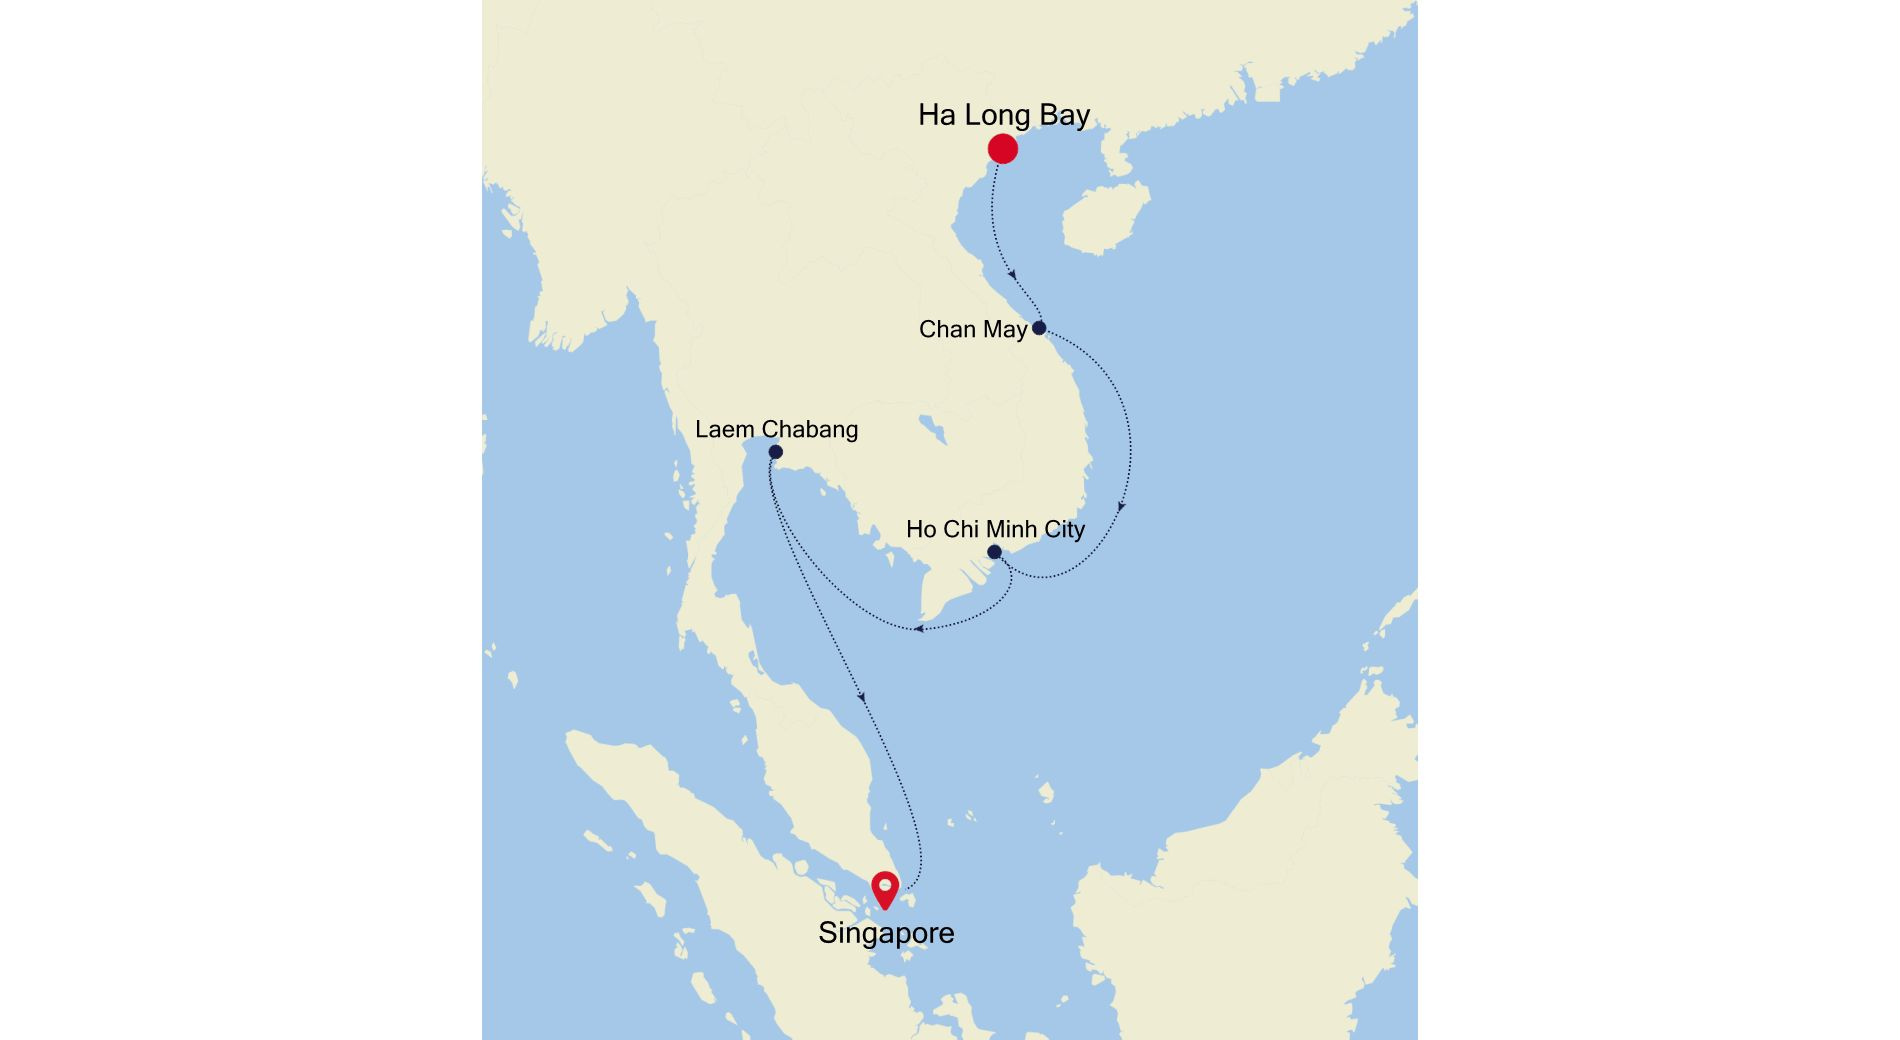 5004G - Ha Long Bay nach Singapore